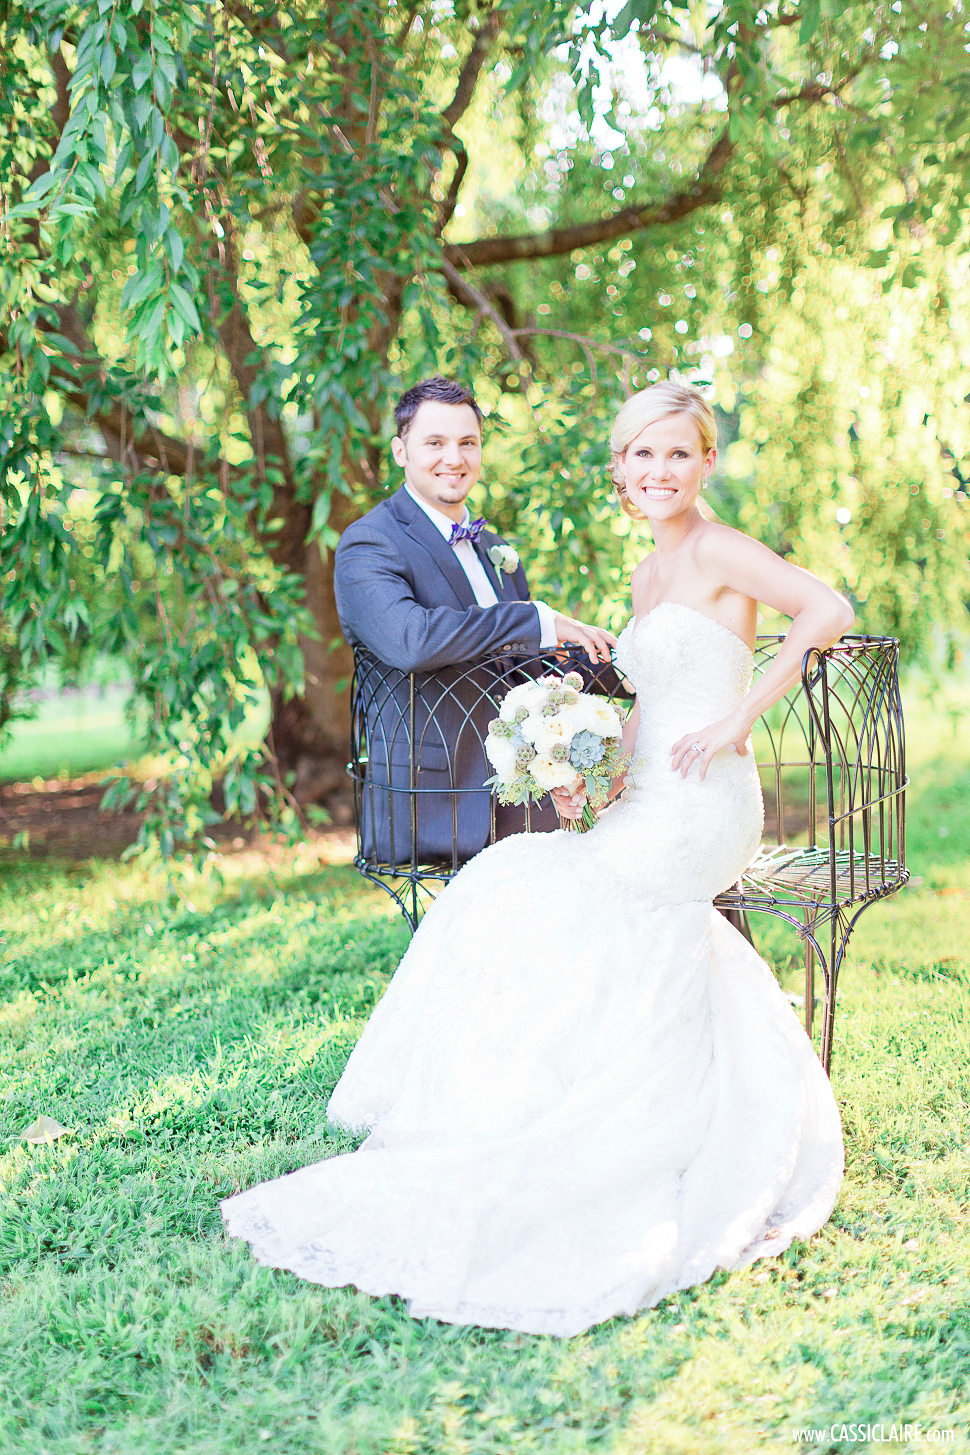 Cassi-Claire_Best-of-2014-Weddings_009_____2editgreens.jpg